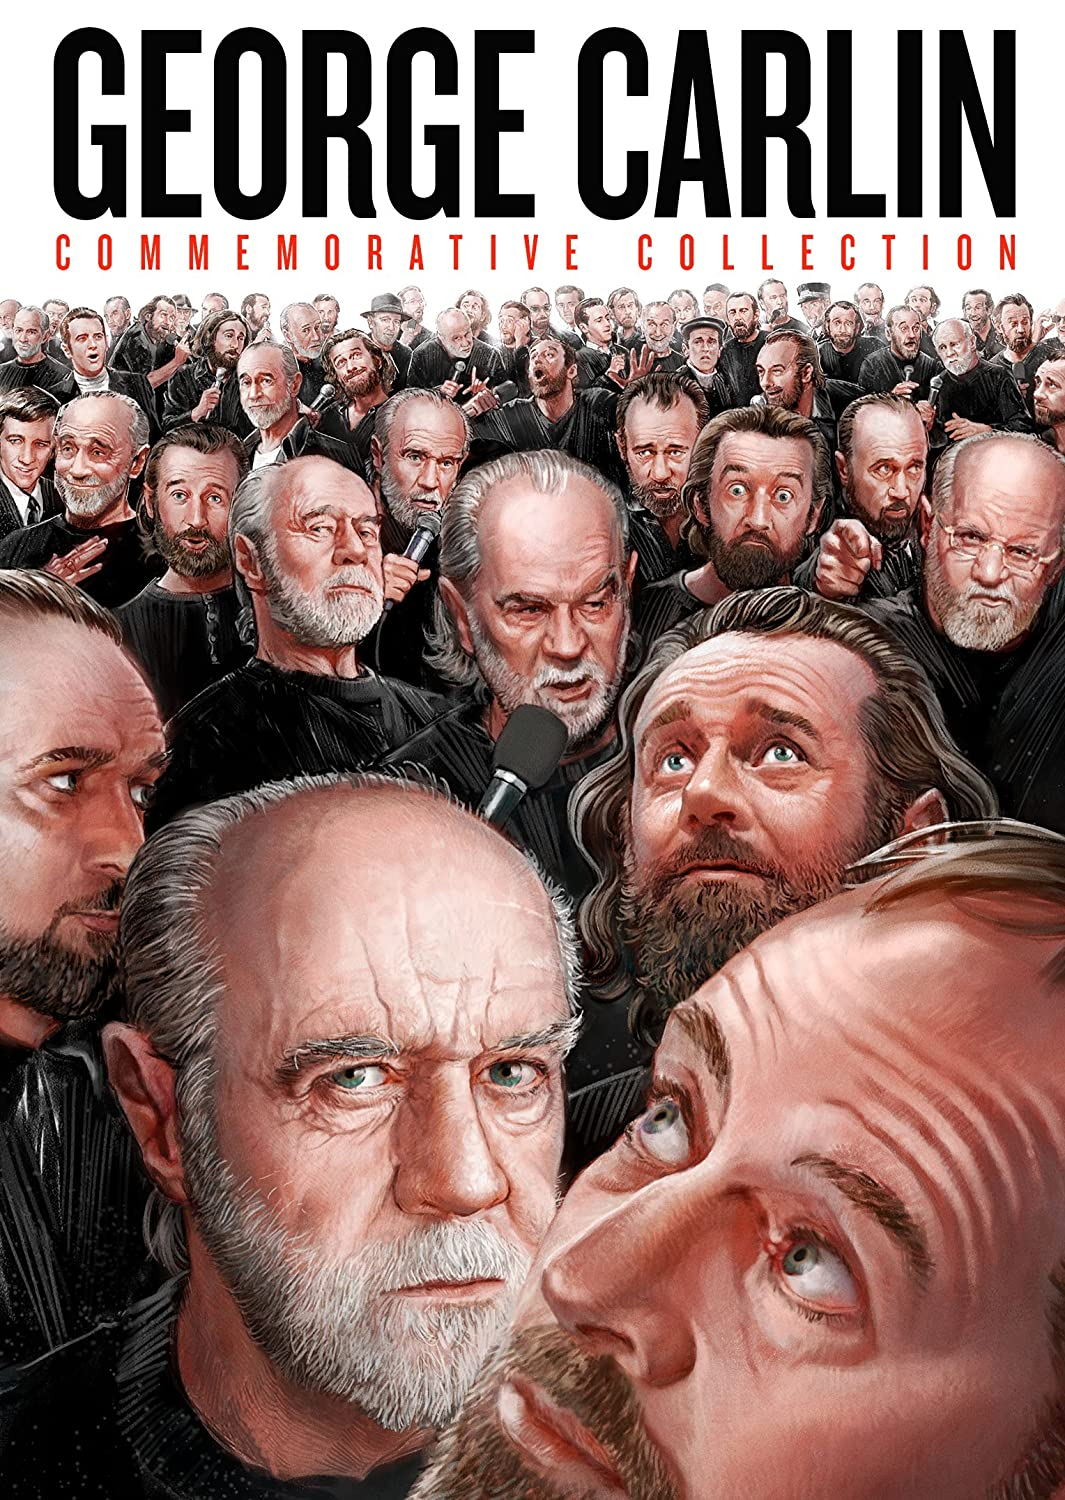 Amazon.com: George Carlin Commemorative Collection: George Carlin ...